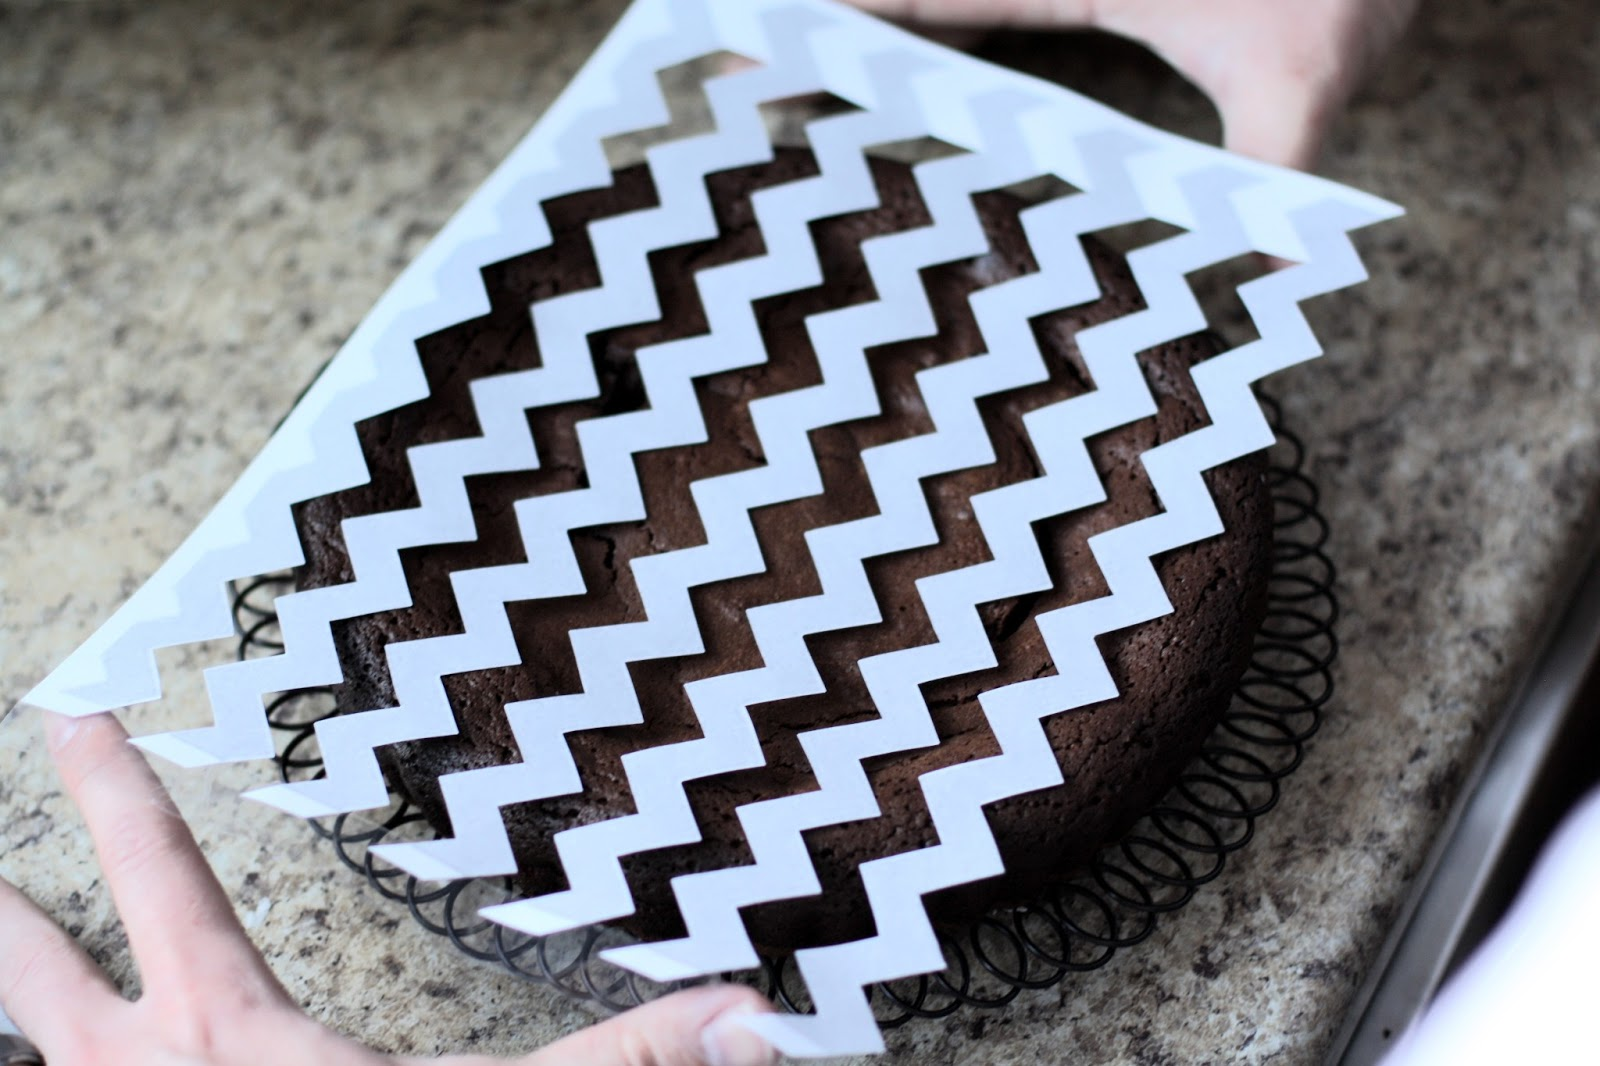 Chevron pattern on cake butter with a side of bread